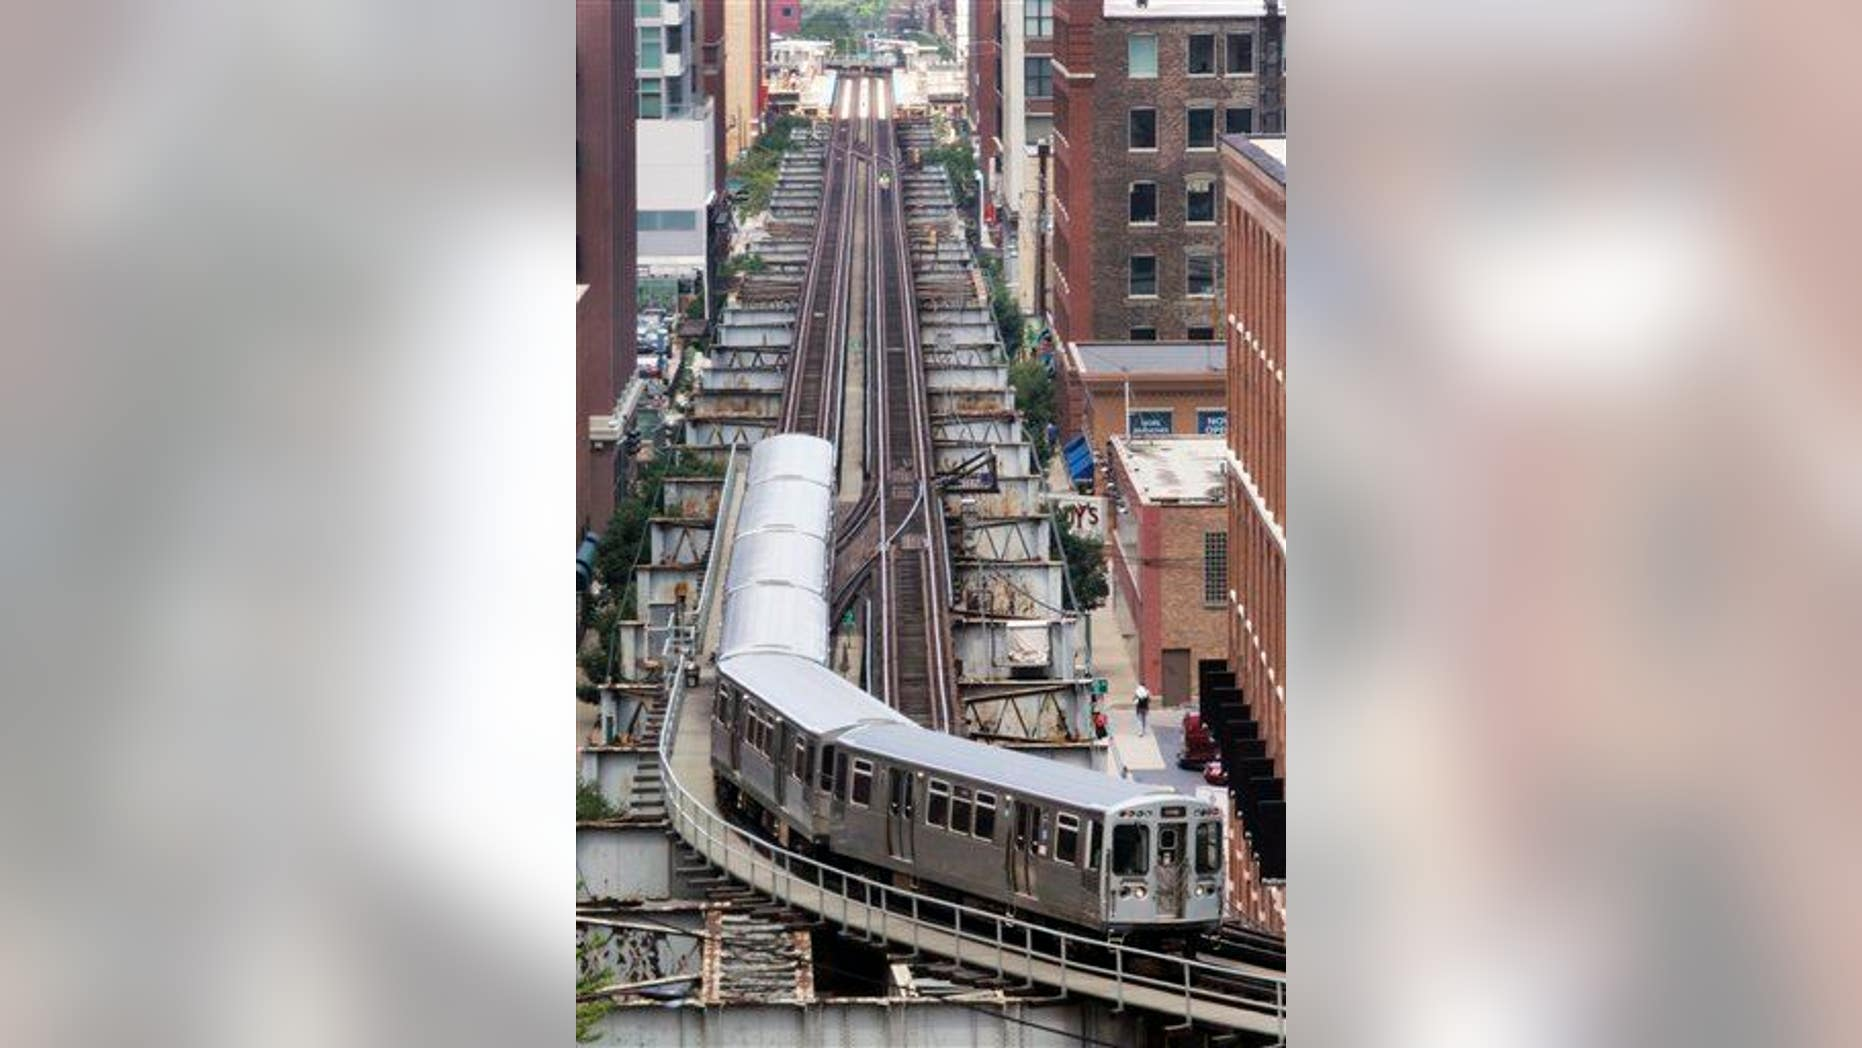 A Brown line L train is shown in this file photo.